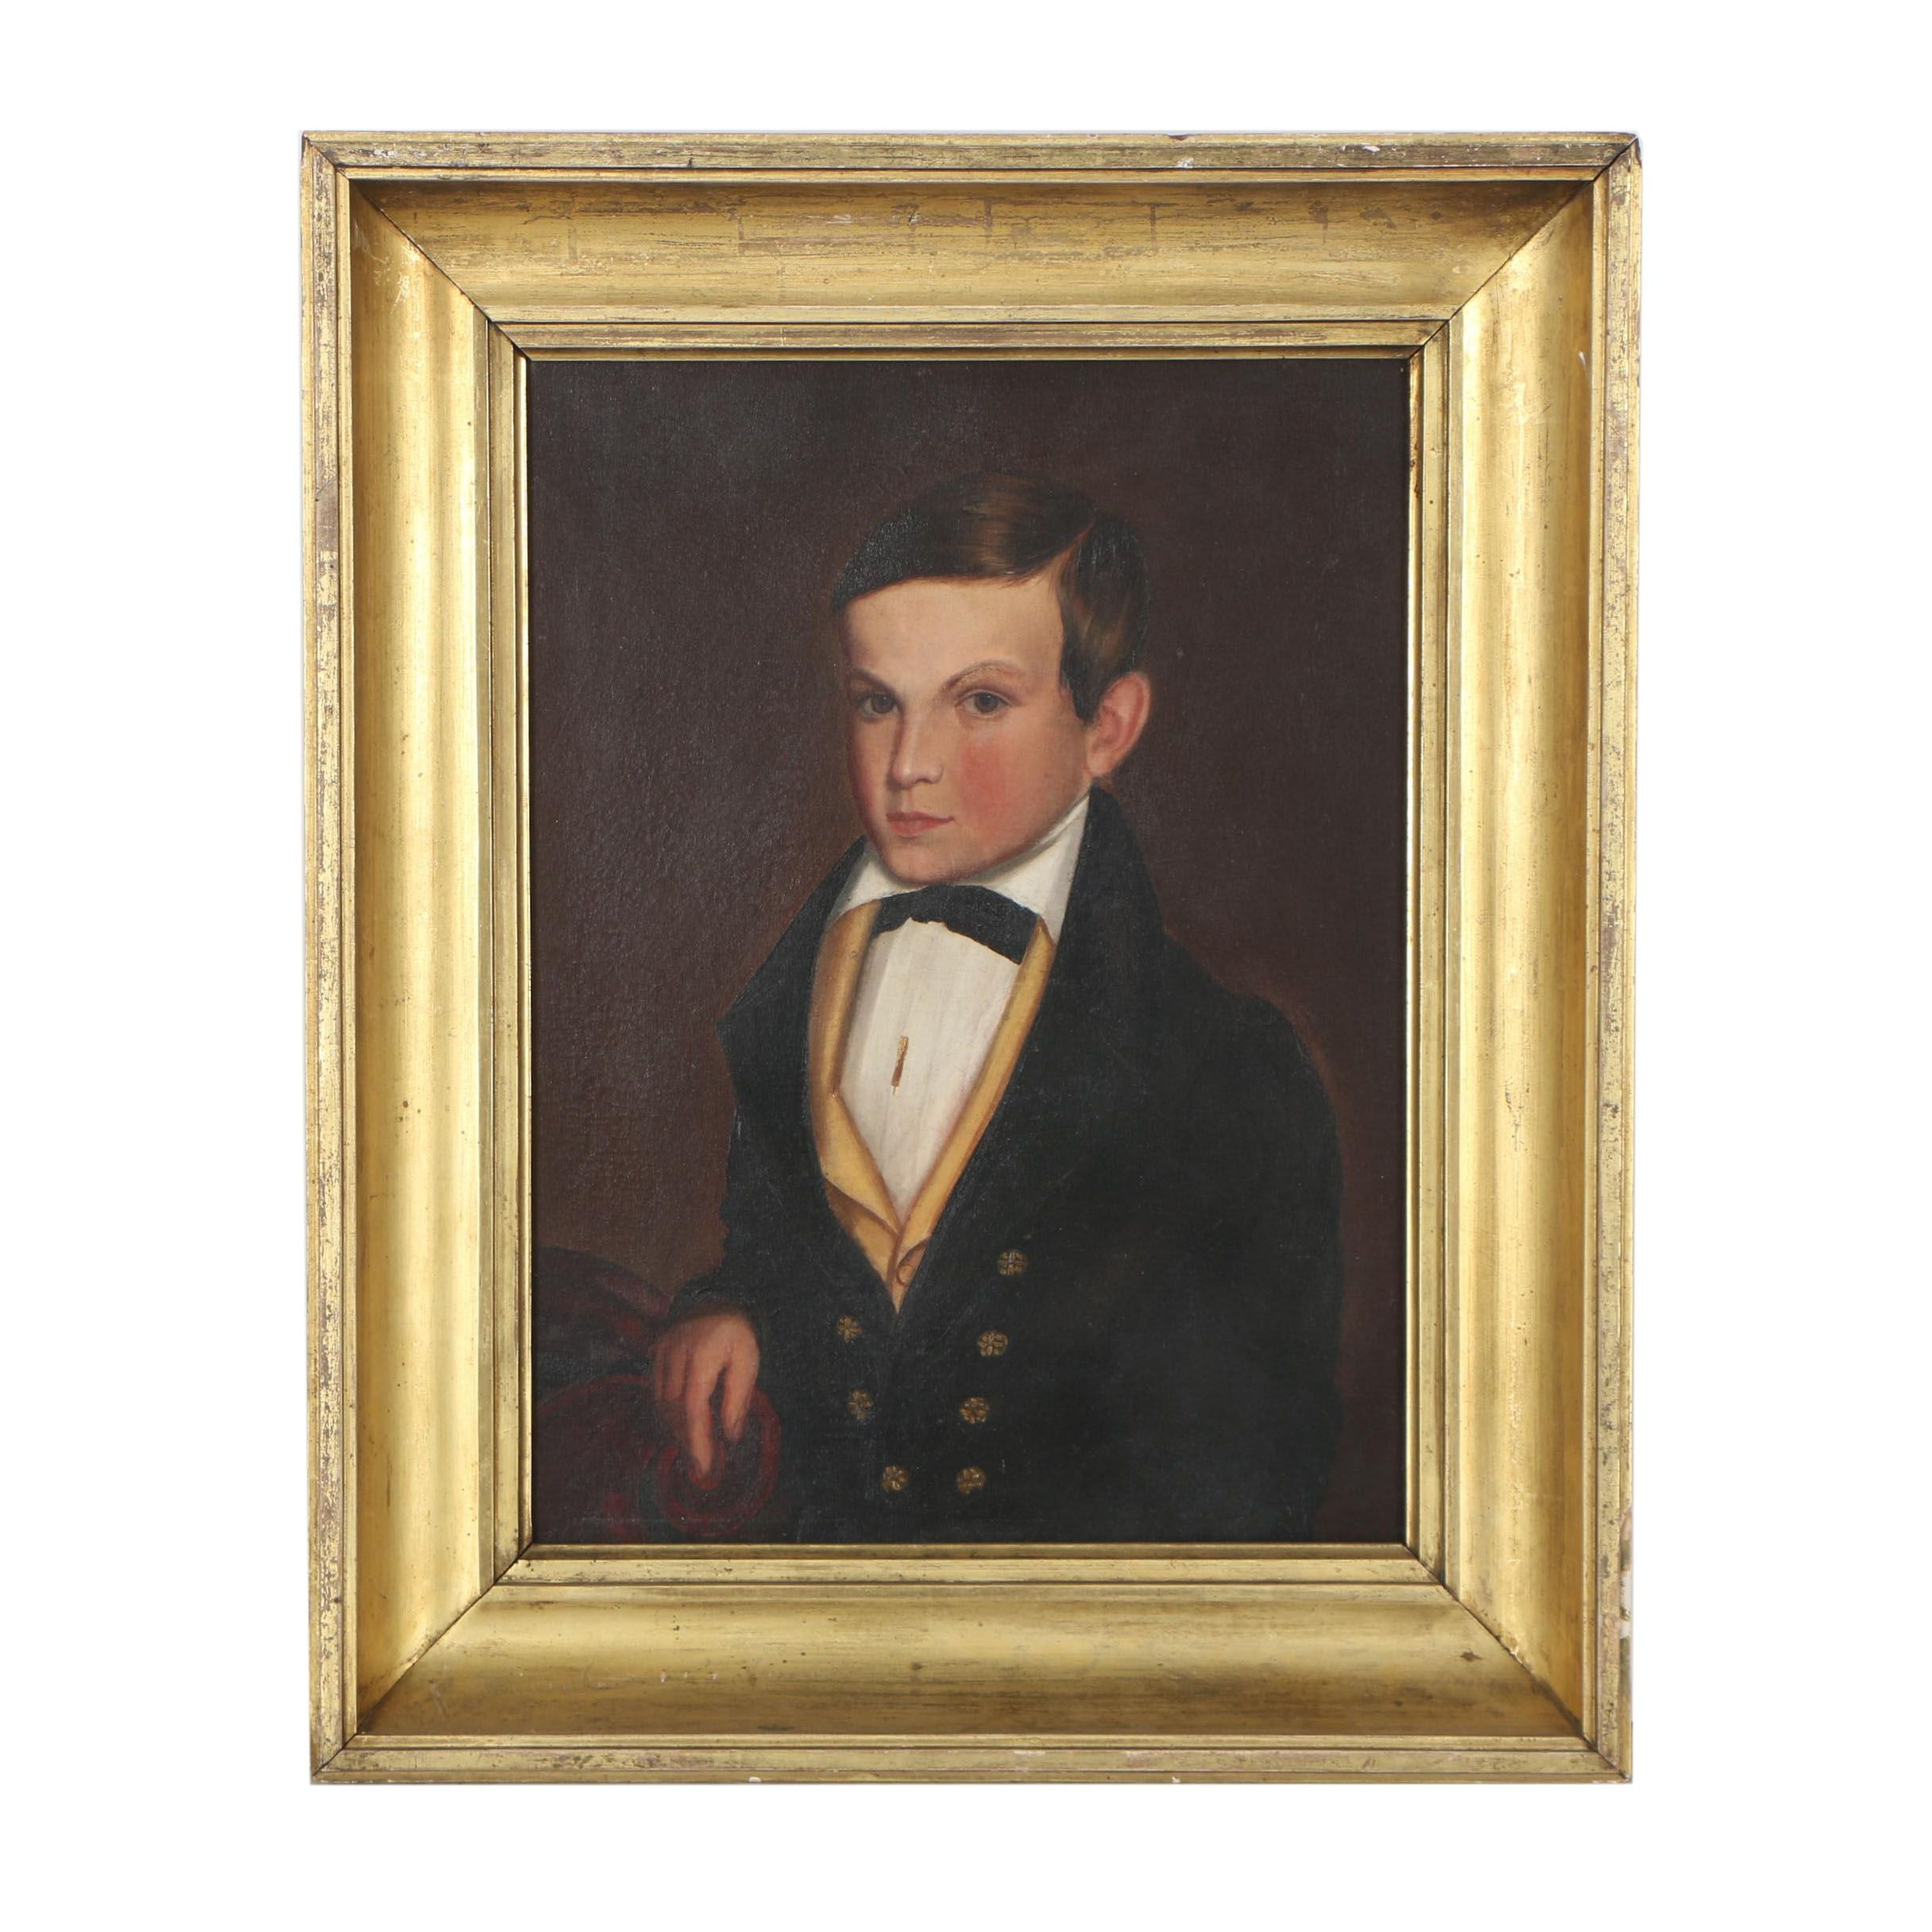 Early American Folk Art Portrait Oil Painting